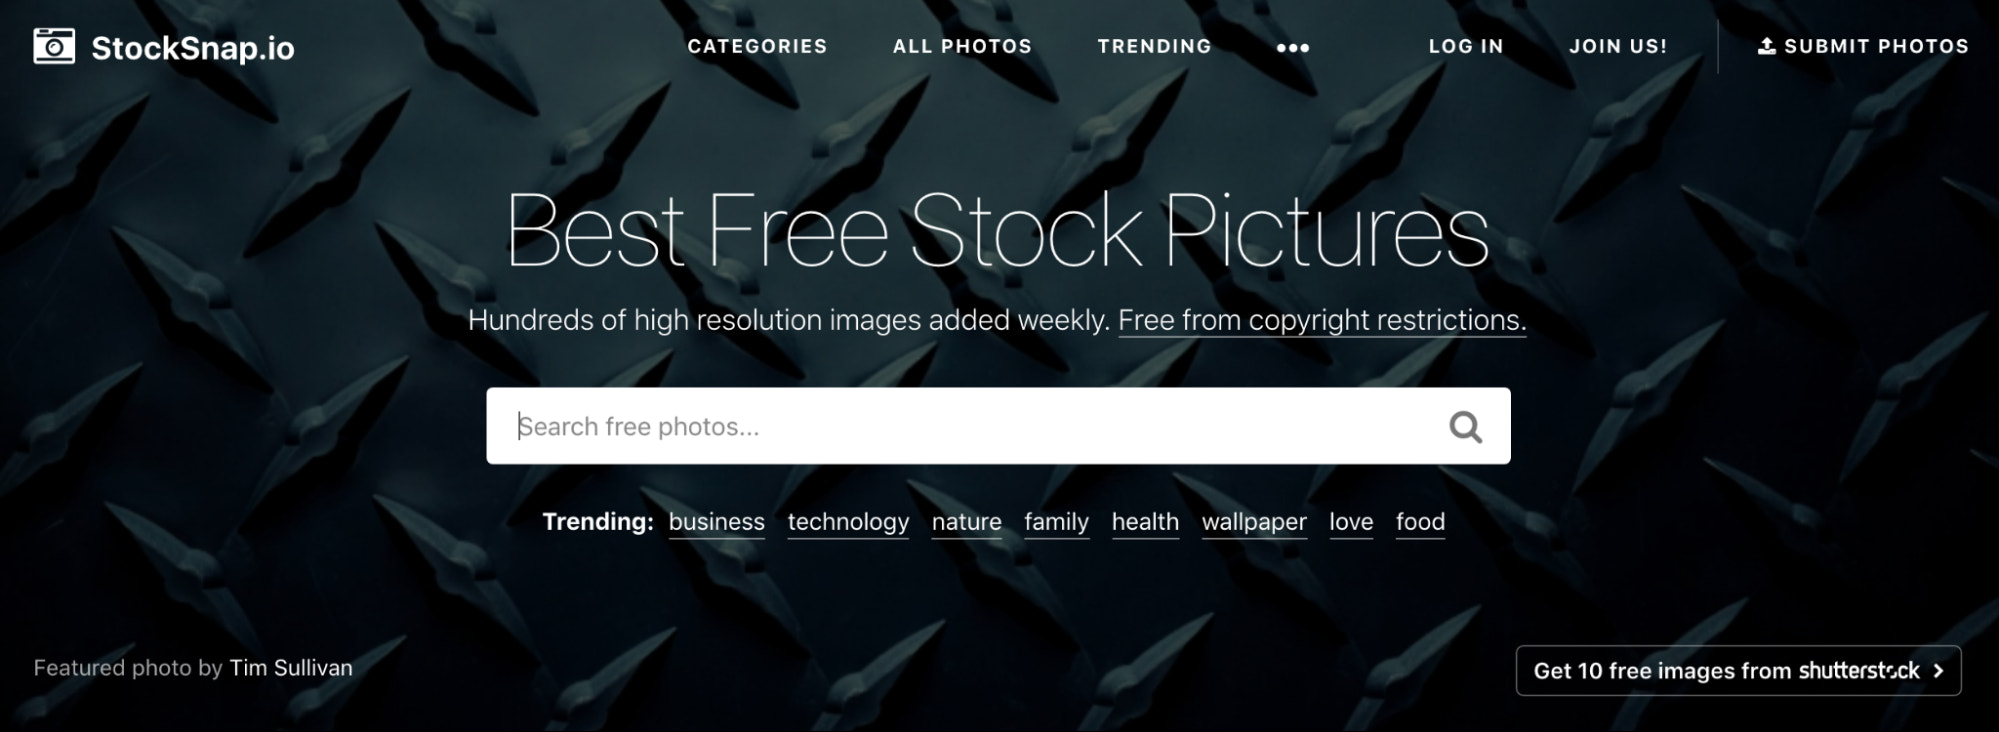 stocksnap.io free stock photography site